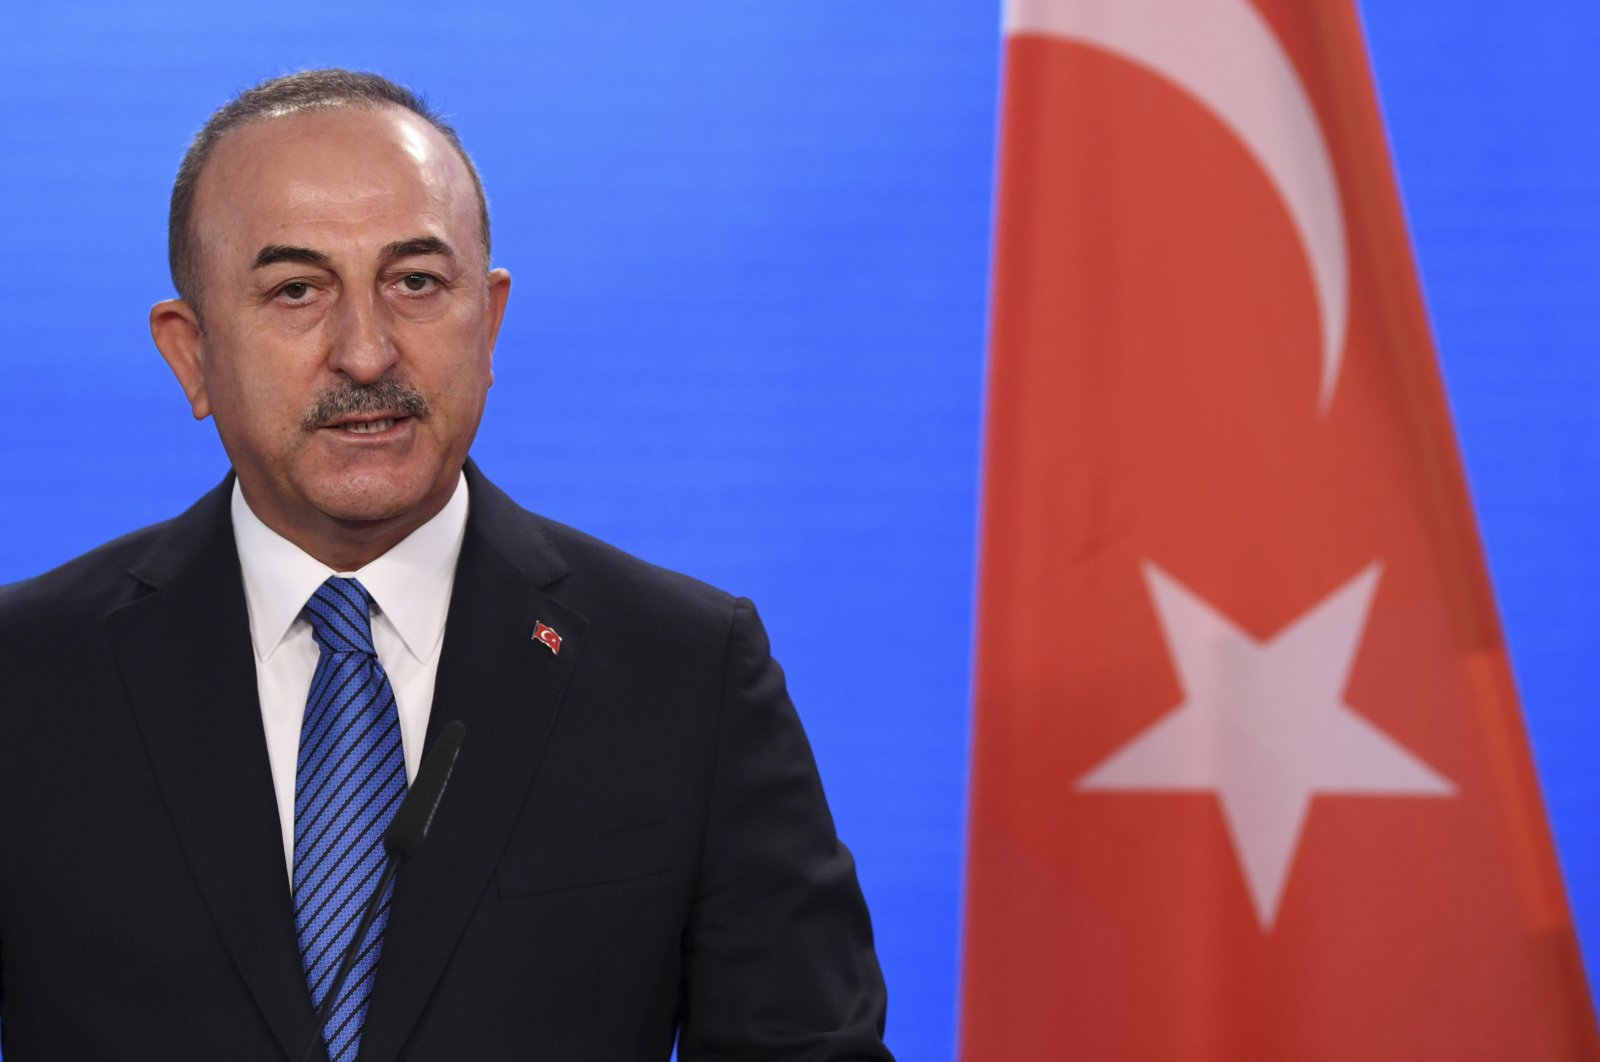 Turkish Foreign Minister Mevlüt Çavuşoğlu gives a statement to the media following a meeting with German Foreign Minister Heiko Maas at the foreign ministry in Berlin, Germany, May 6, 2021. (Annegret Hilse/Pool via AP)